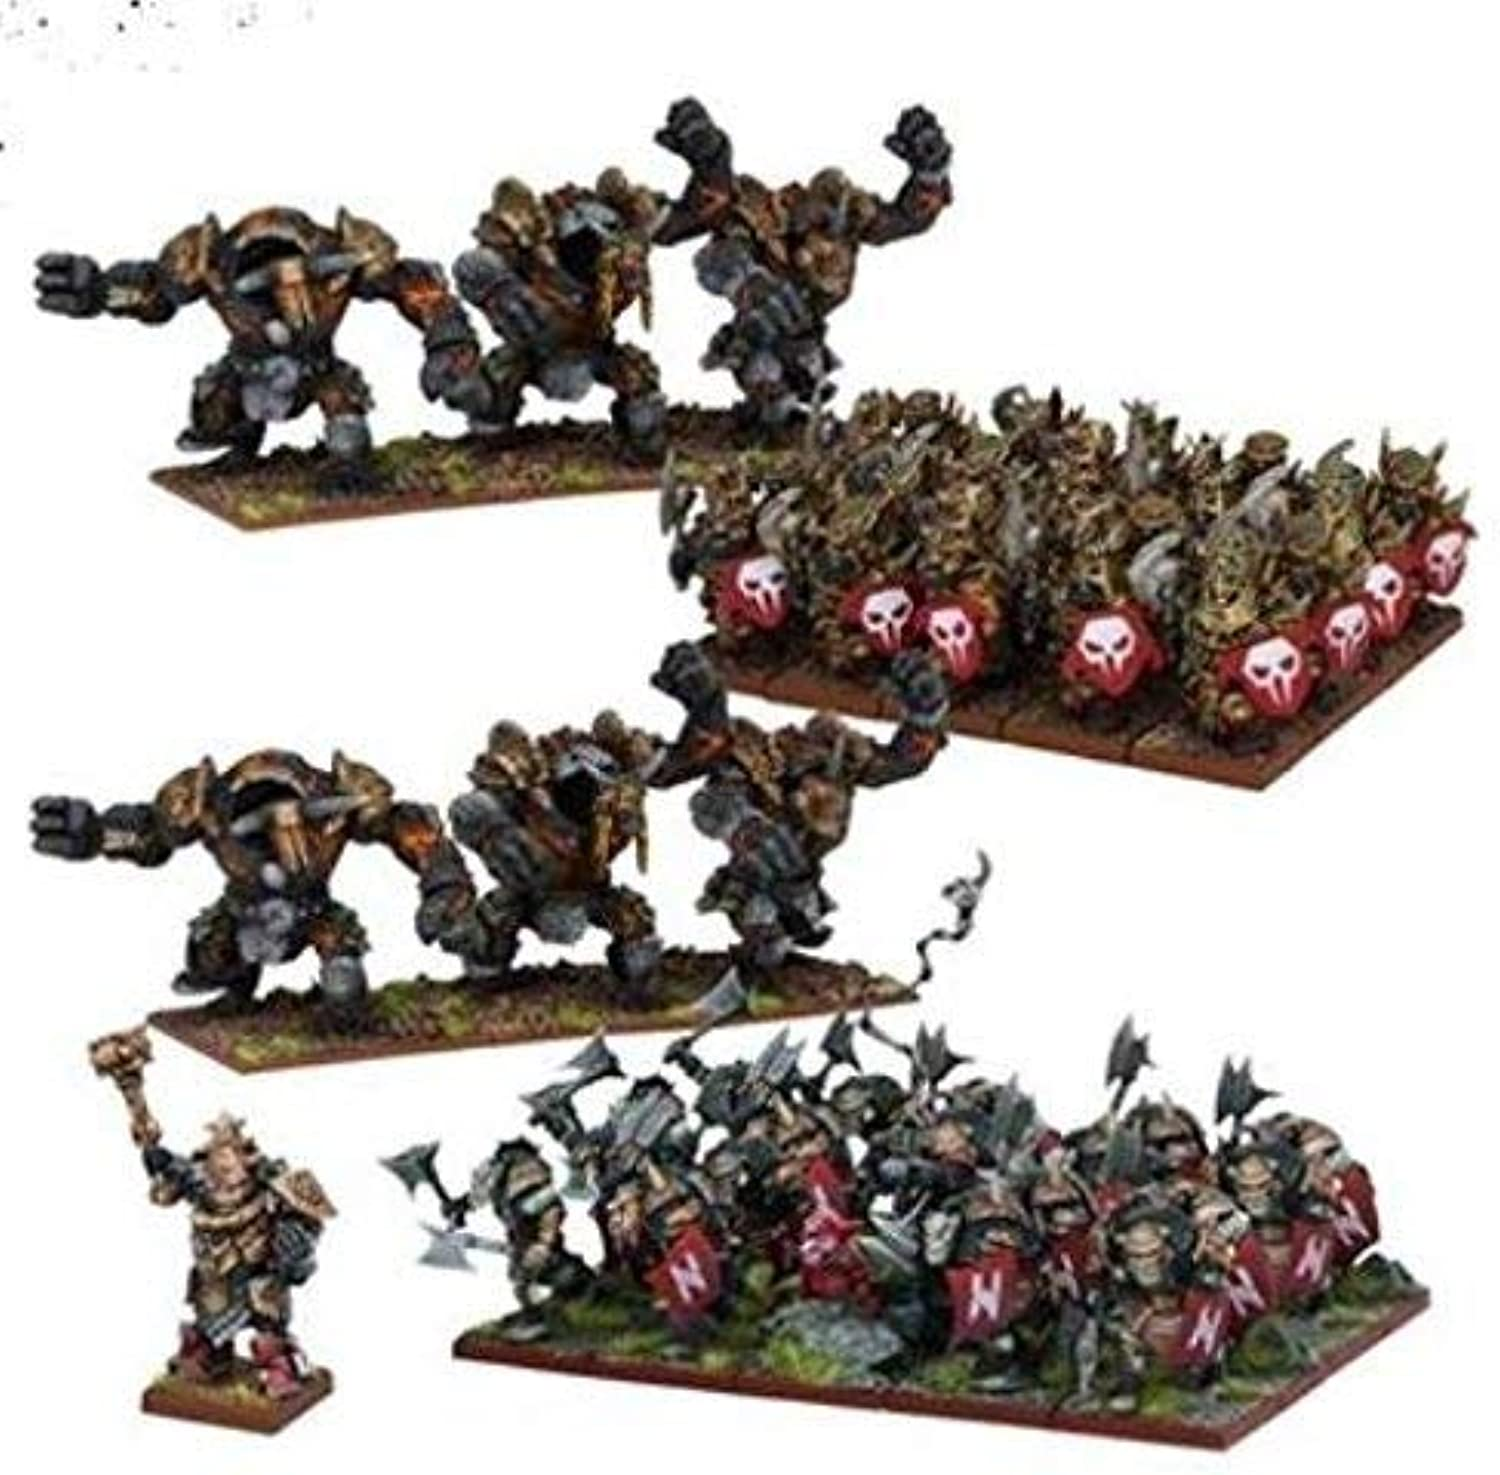 Mantic Games MGKWK110 Abyssal Dwarf Army Miniature Game, MultiColour